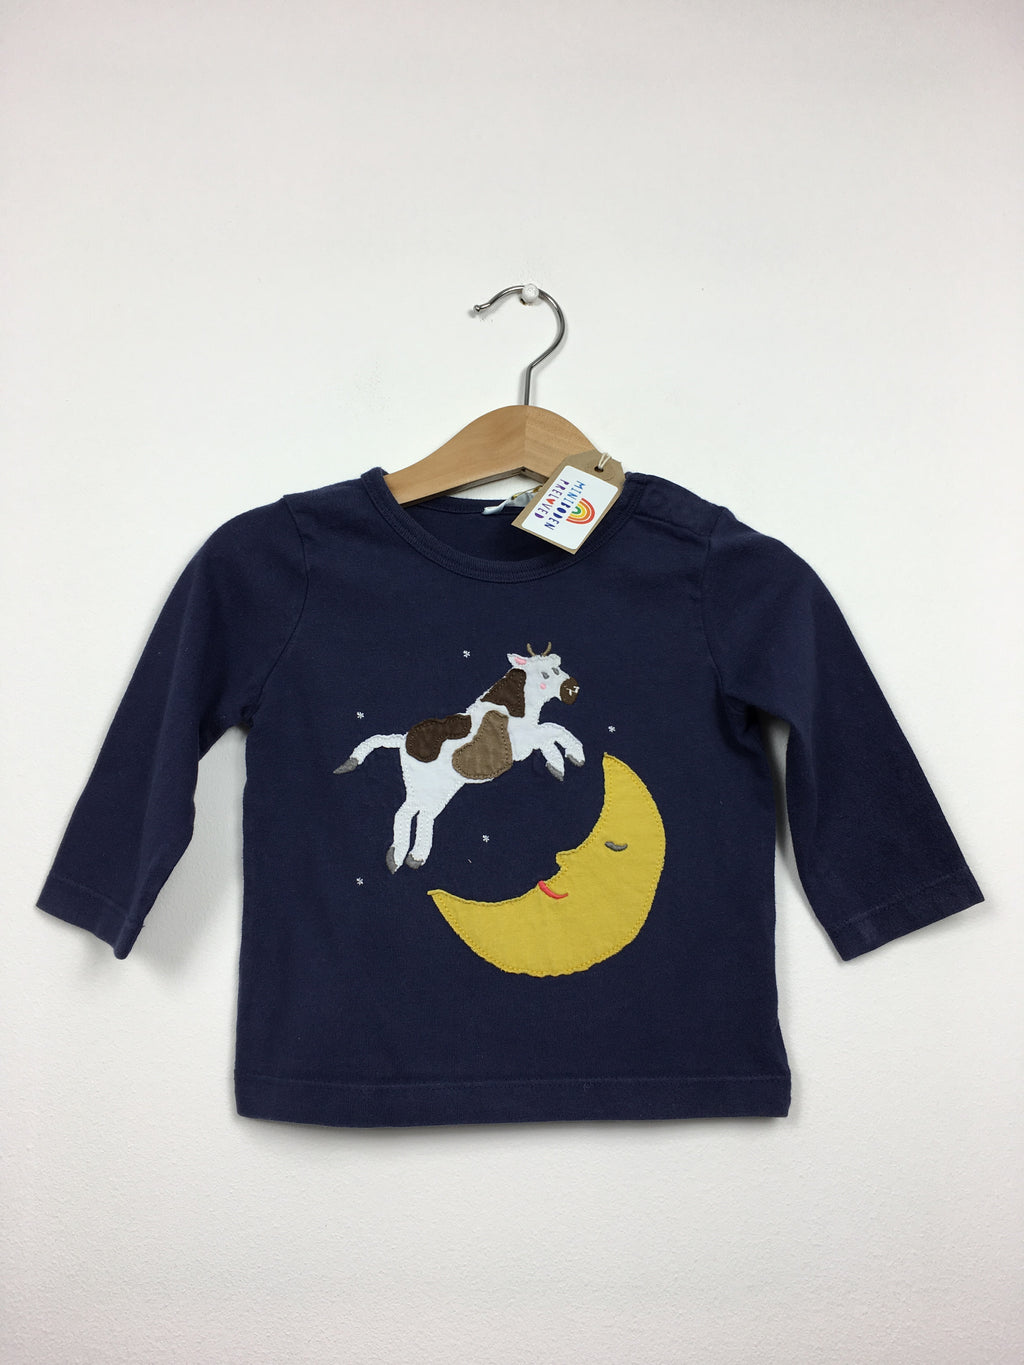 Blue Applique Cow & Moon Top (6-12 Months)